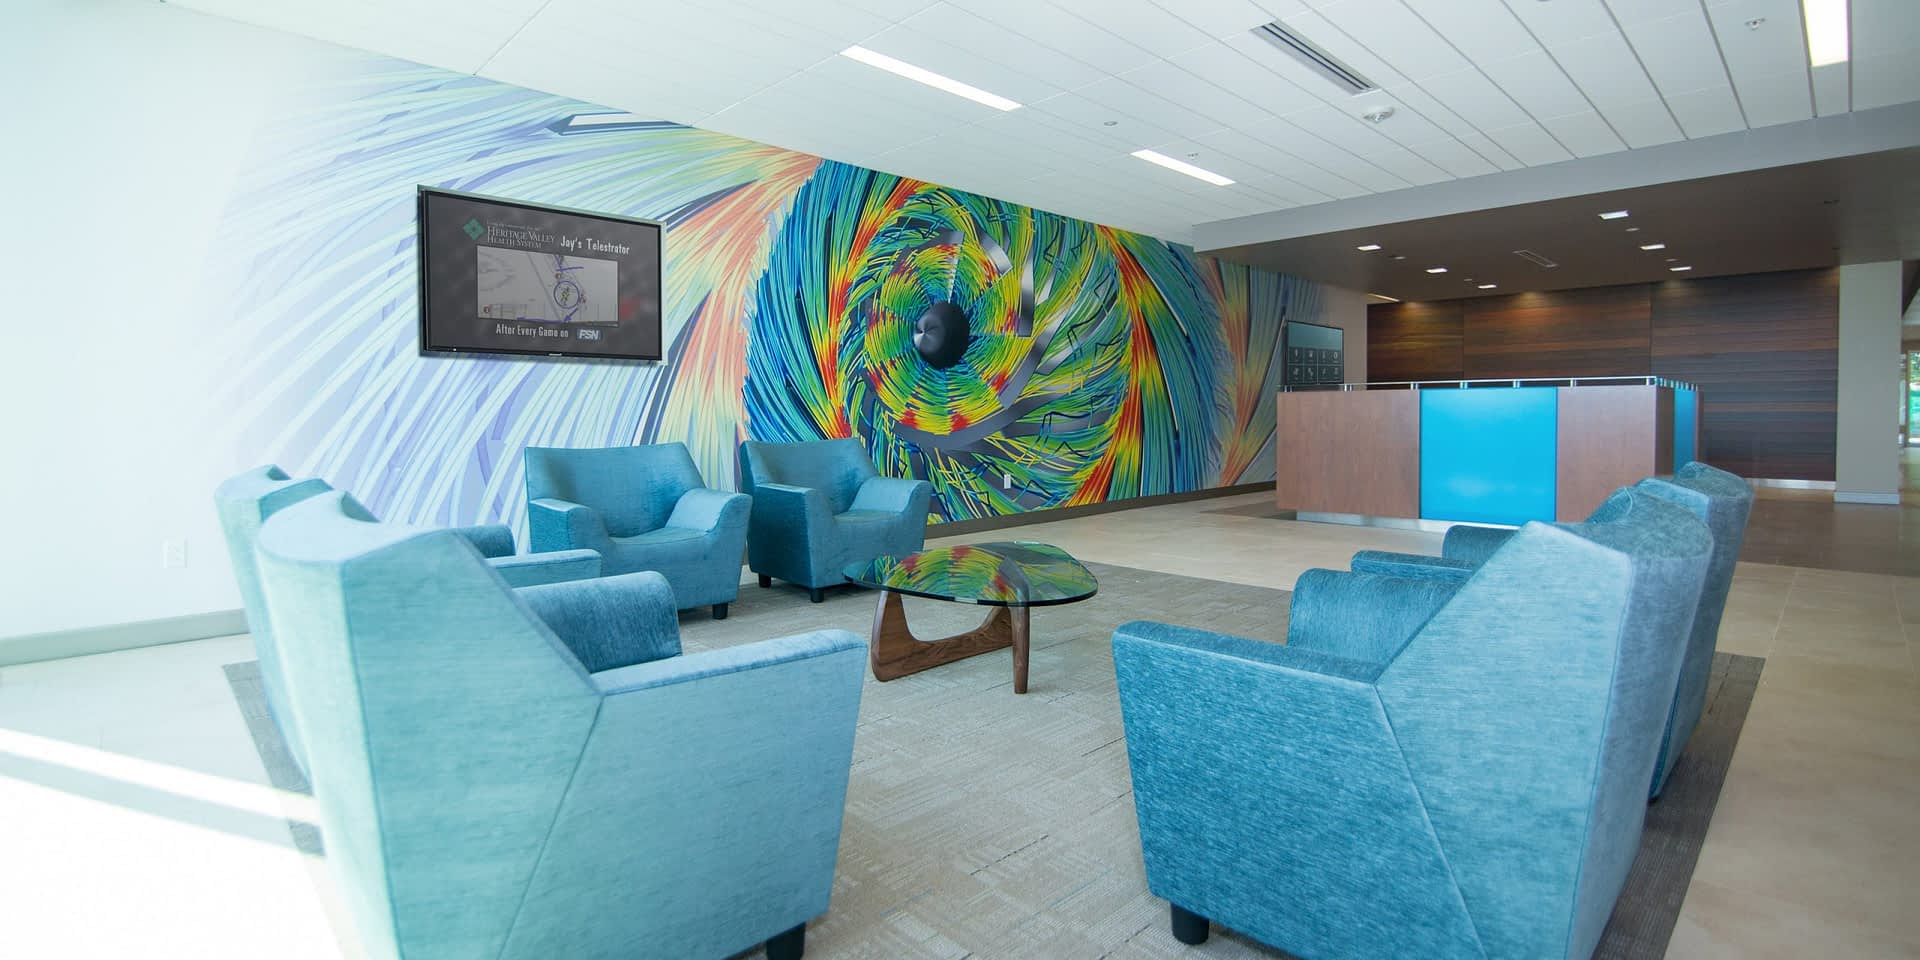 collaborative workspace with blue chairs, a coffee table, and a colorful wall vinyl wrap